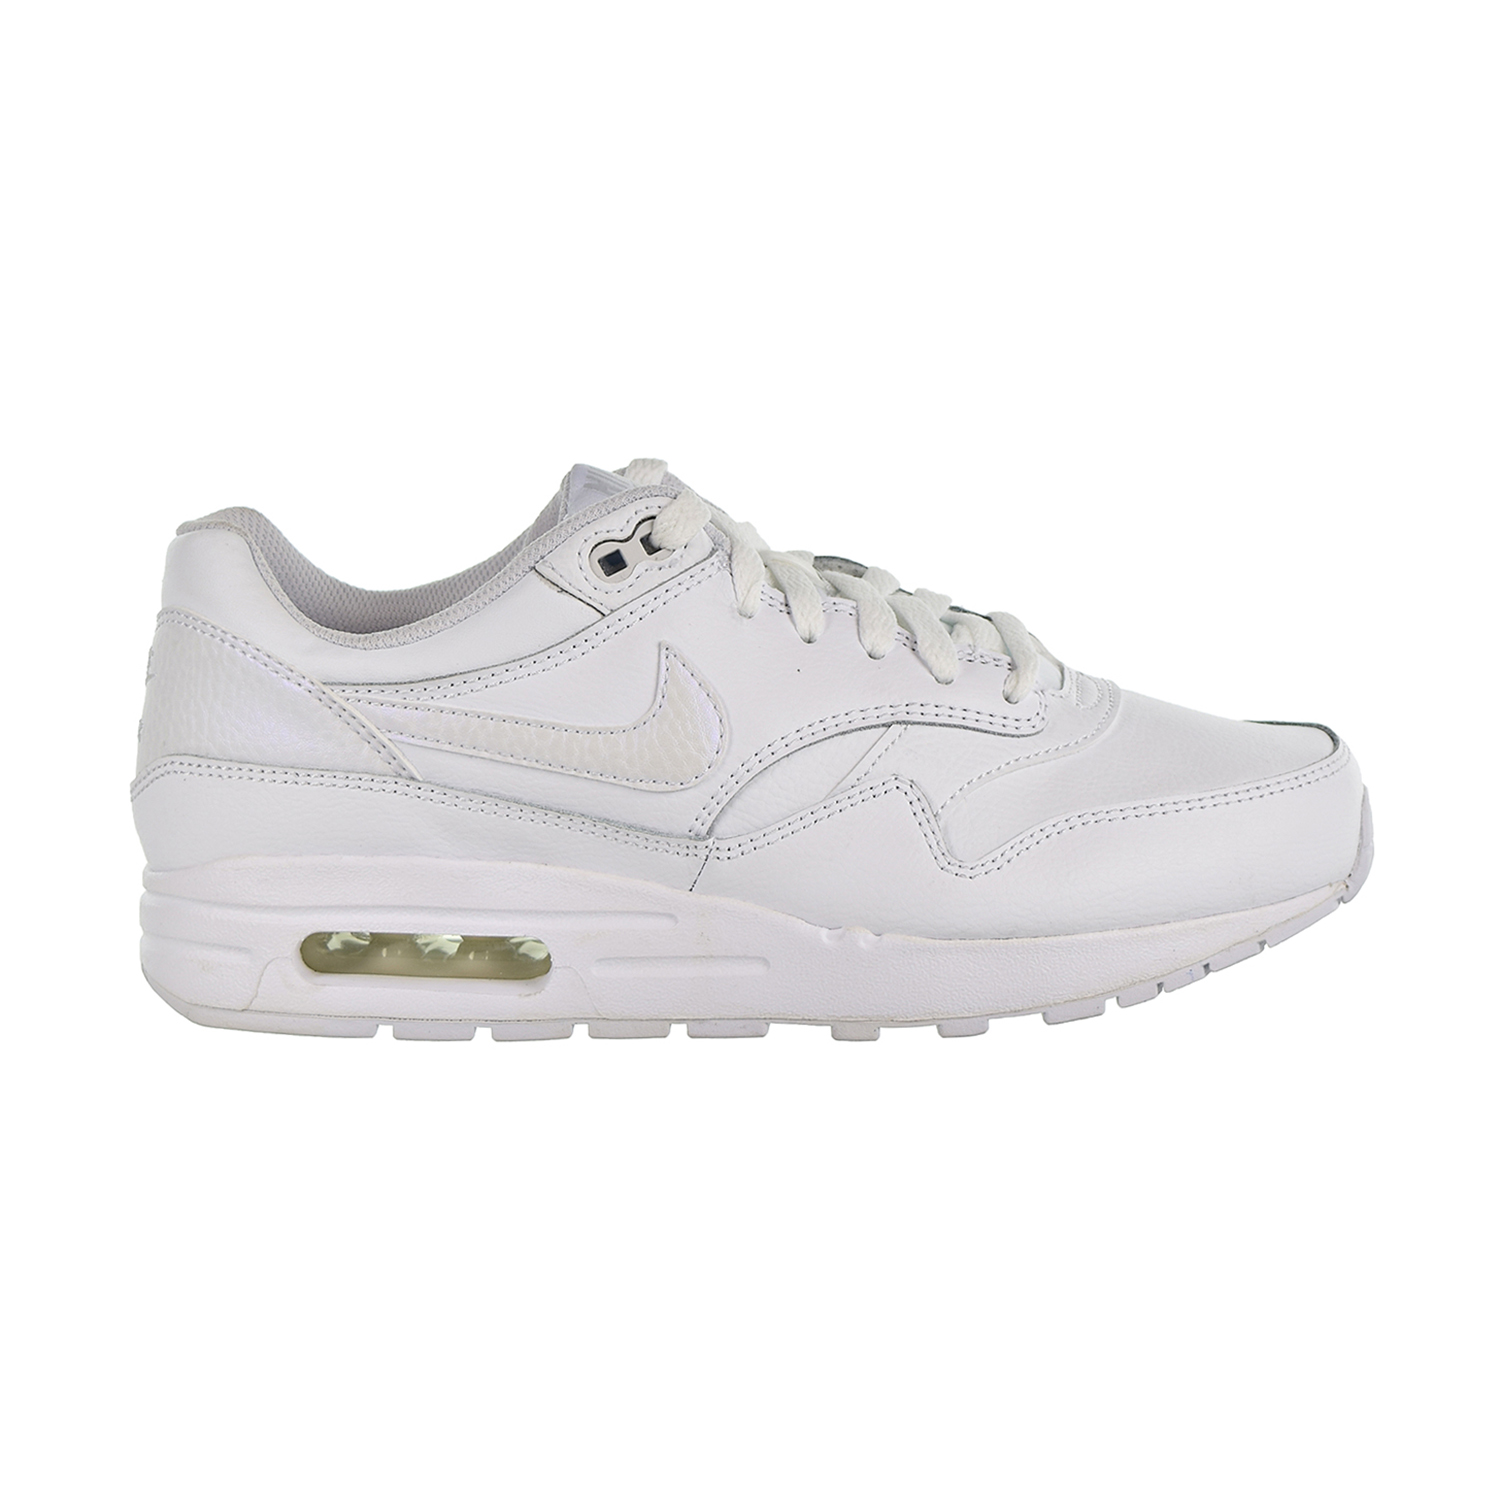 new arrival 28c51 934e3 Details about Nike Air Max 1 Big Kids  Shoes White Vast Grey 807605-105